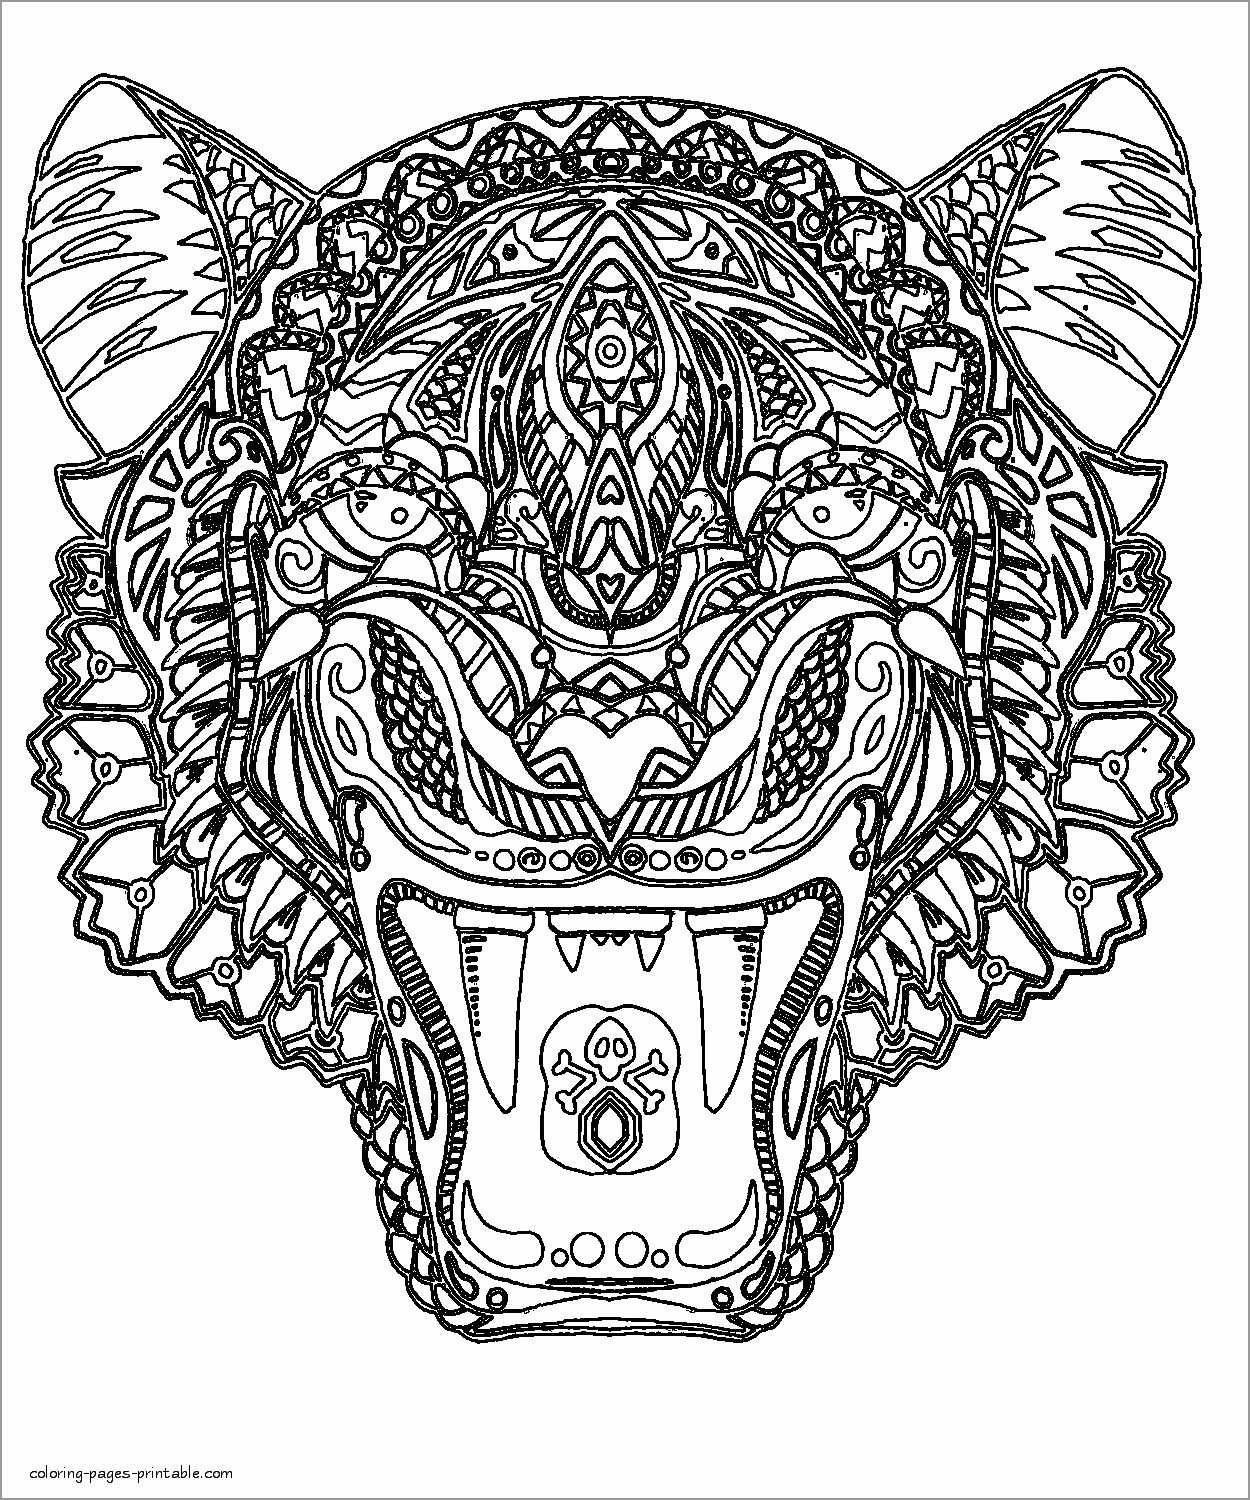 Tiger Head Coloring Page for Adults